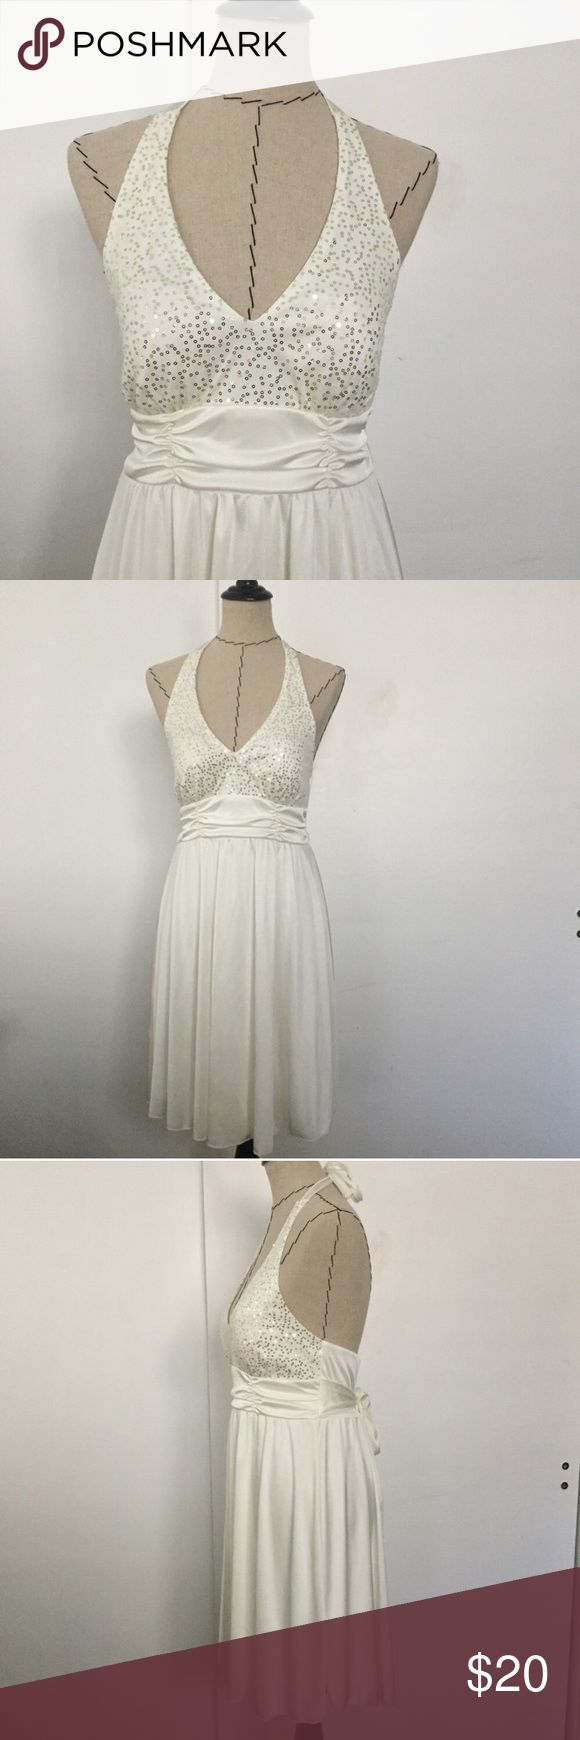 White cream sequin v neck halter dress 100% polyester. Adorable dress for that night out! V neck in the front with an open back. Sequins add the perfect touch to this Marilyn Monroe style dress. Ties in the back around neck. Length from top of sequins is approx 35.  Waist is approx 13.5. Ties in the back. BCX Dresses